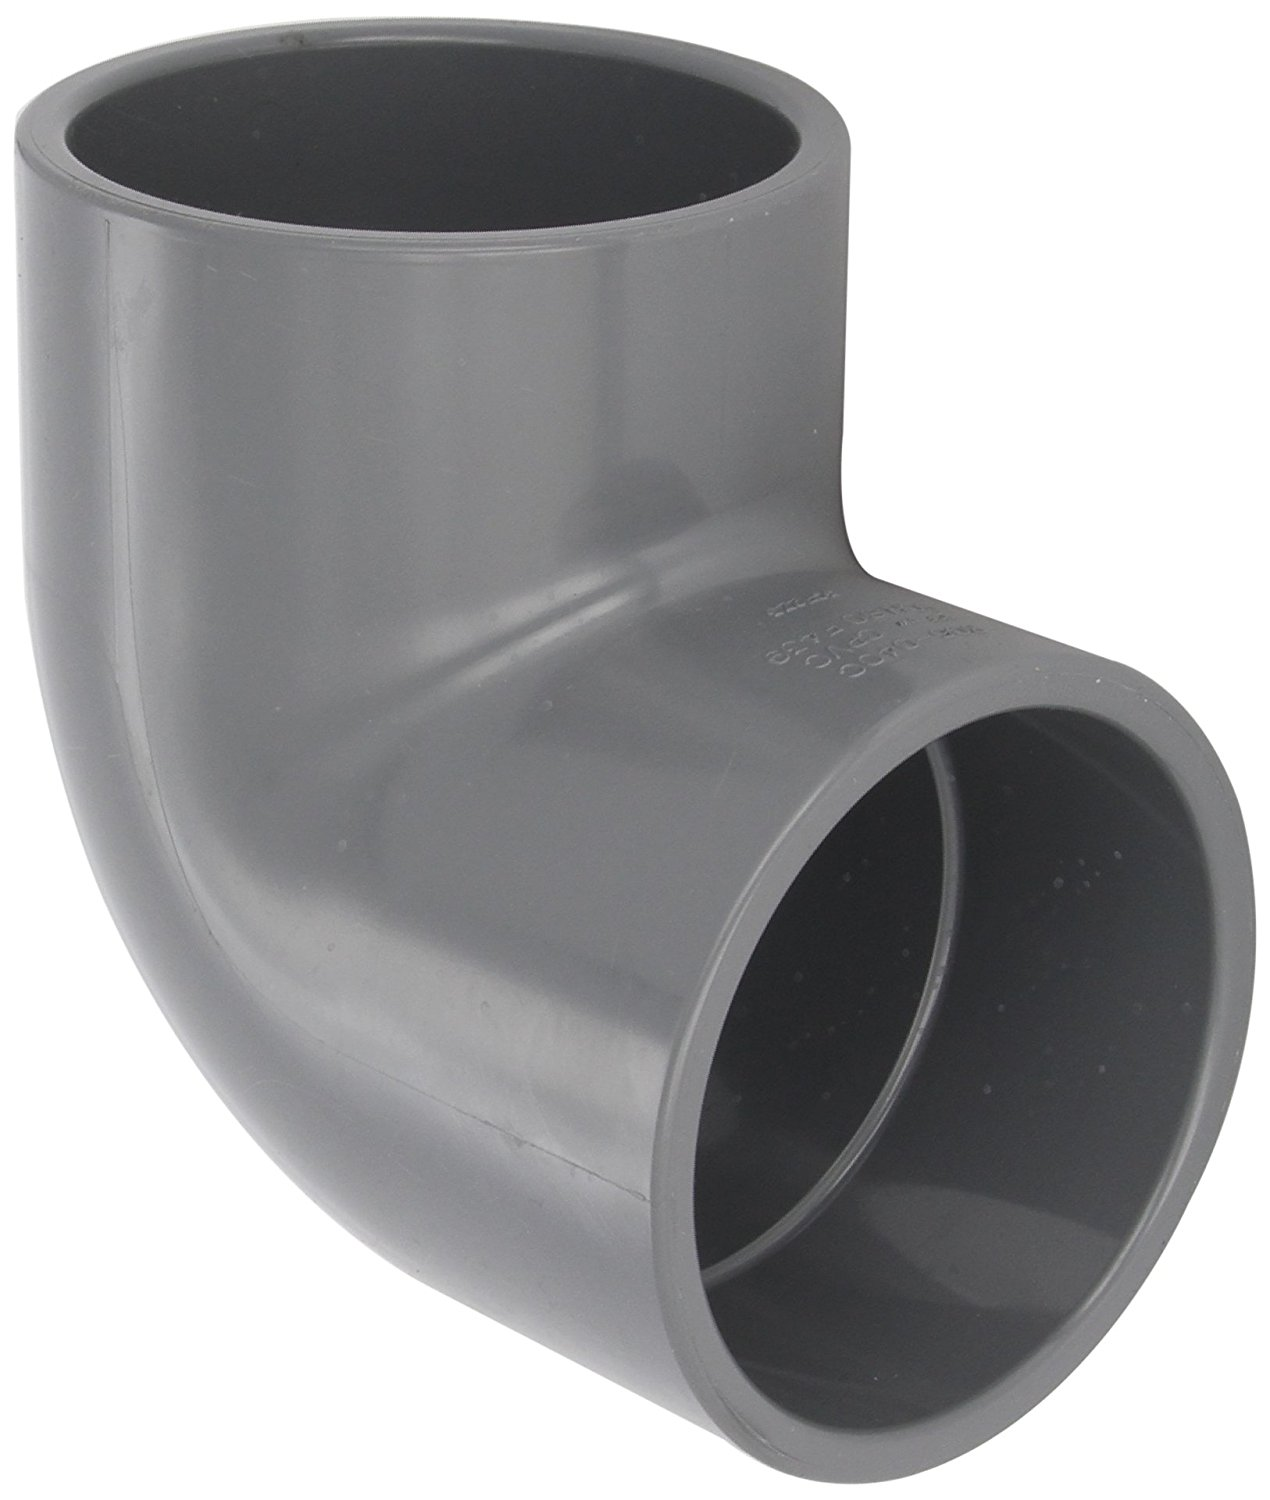 1-1//2 1-1//2 Steel and Obrien 2KMP-15-304 Stainless Steel Clamp 45 degree Elbow